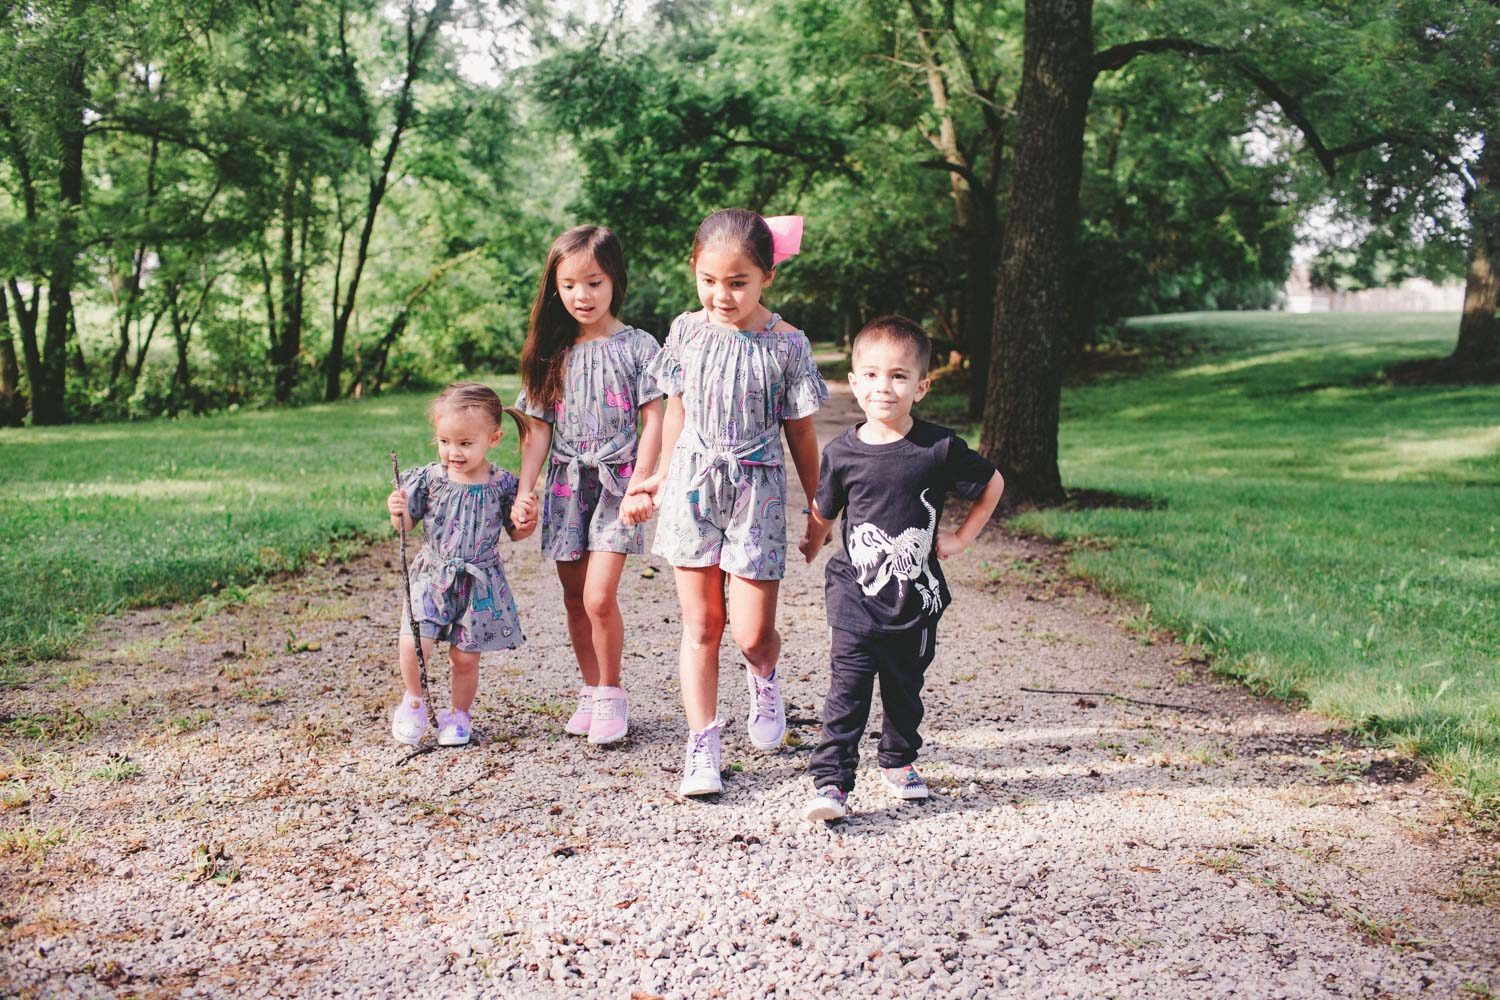 family of four kids - sisters matching unicorn outfits